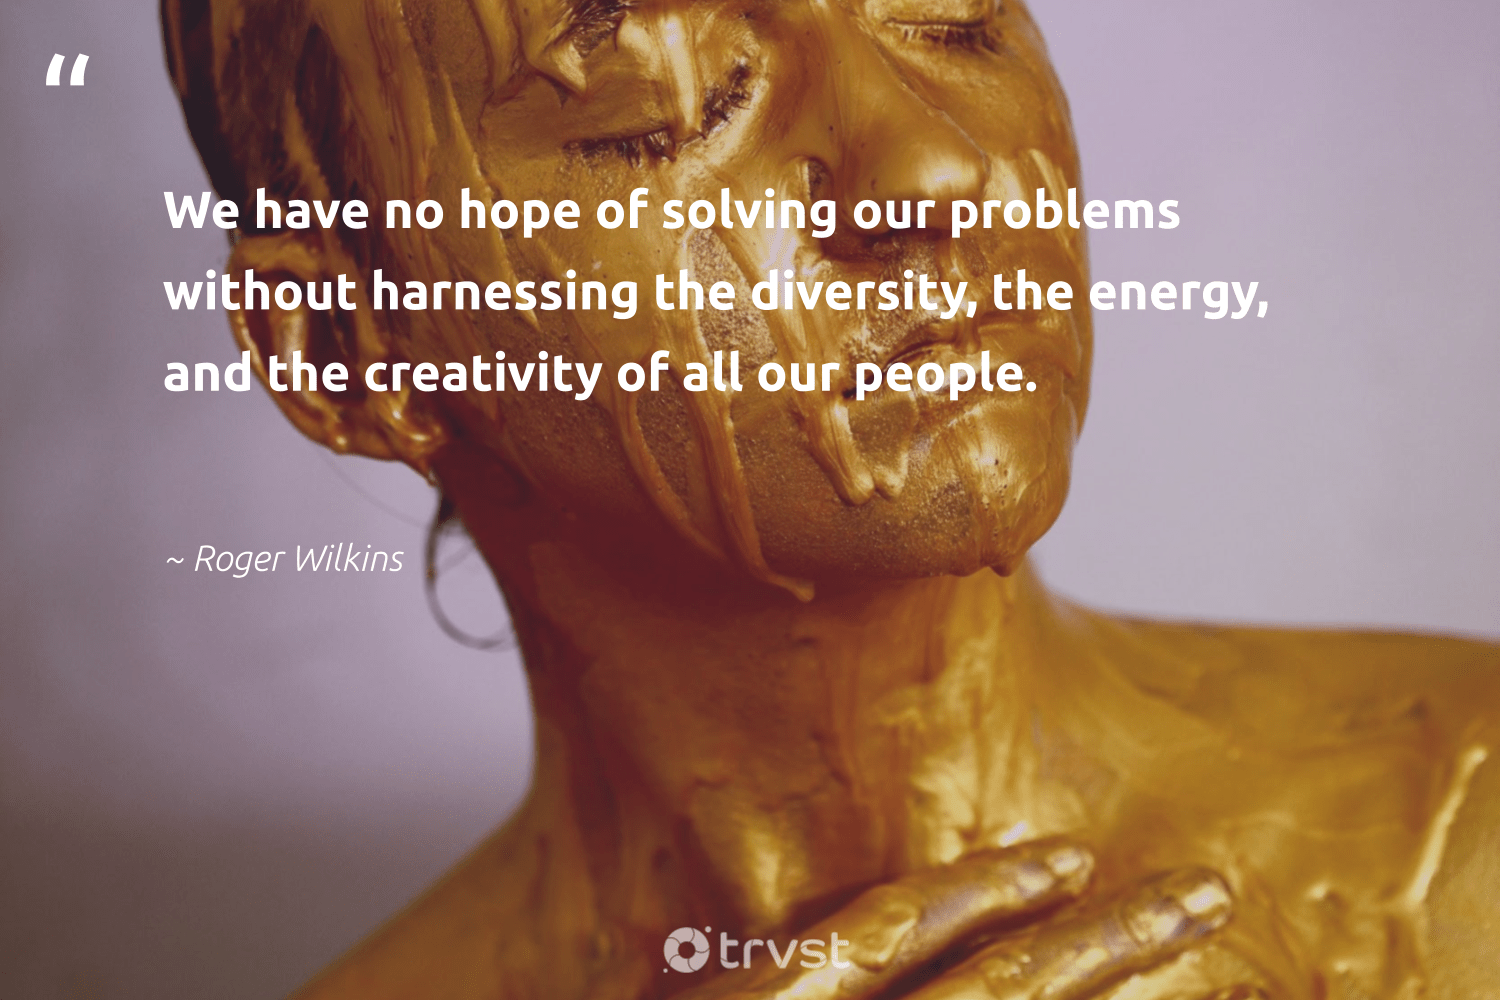 """We have no hope of solving our problems without harnessing the diversity, the energy, and the creativity of all our people.""  - Roger Wilkins #trvst #quotes #diversity #energy #hope #creativity #discrimination #representationmatters #socialgood #weareallone #beinspired #inclusion"